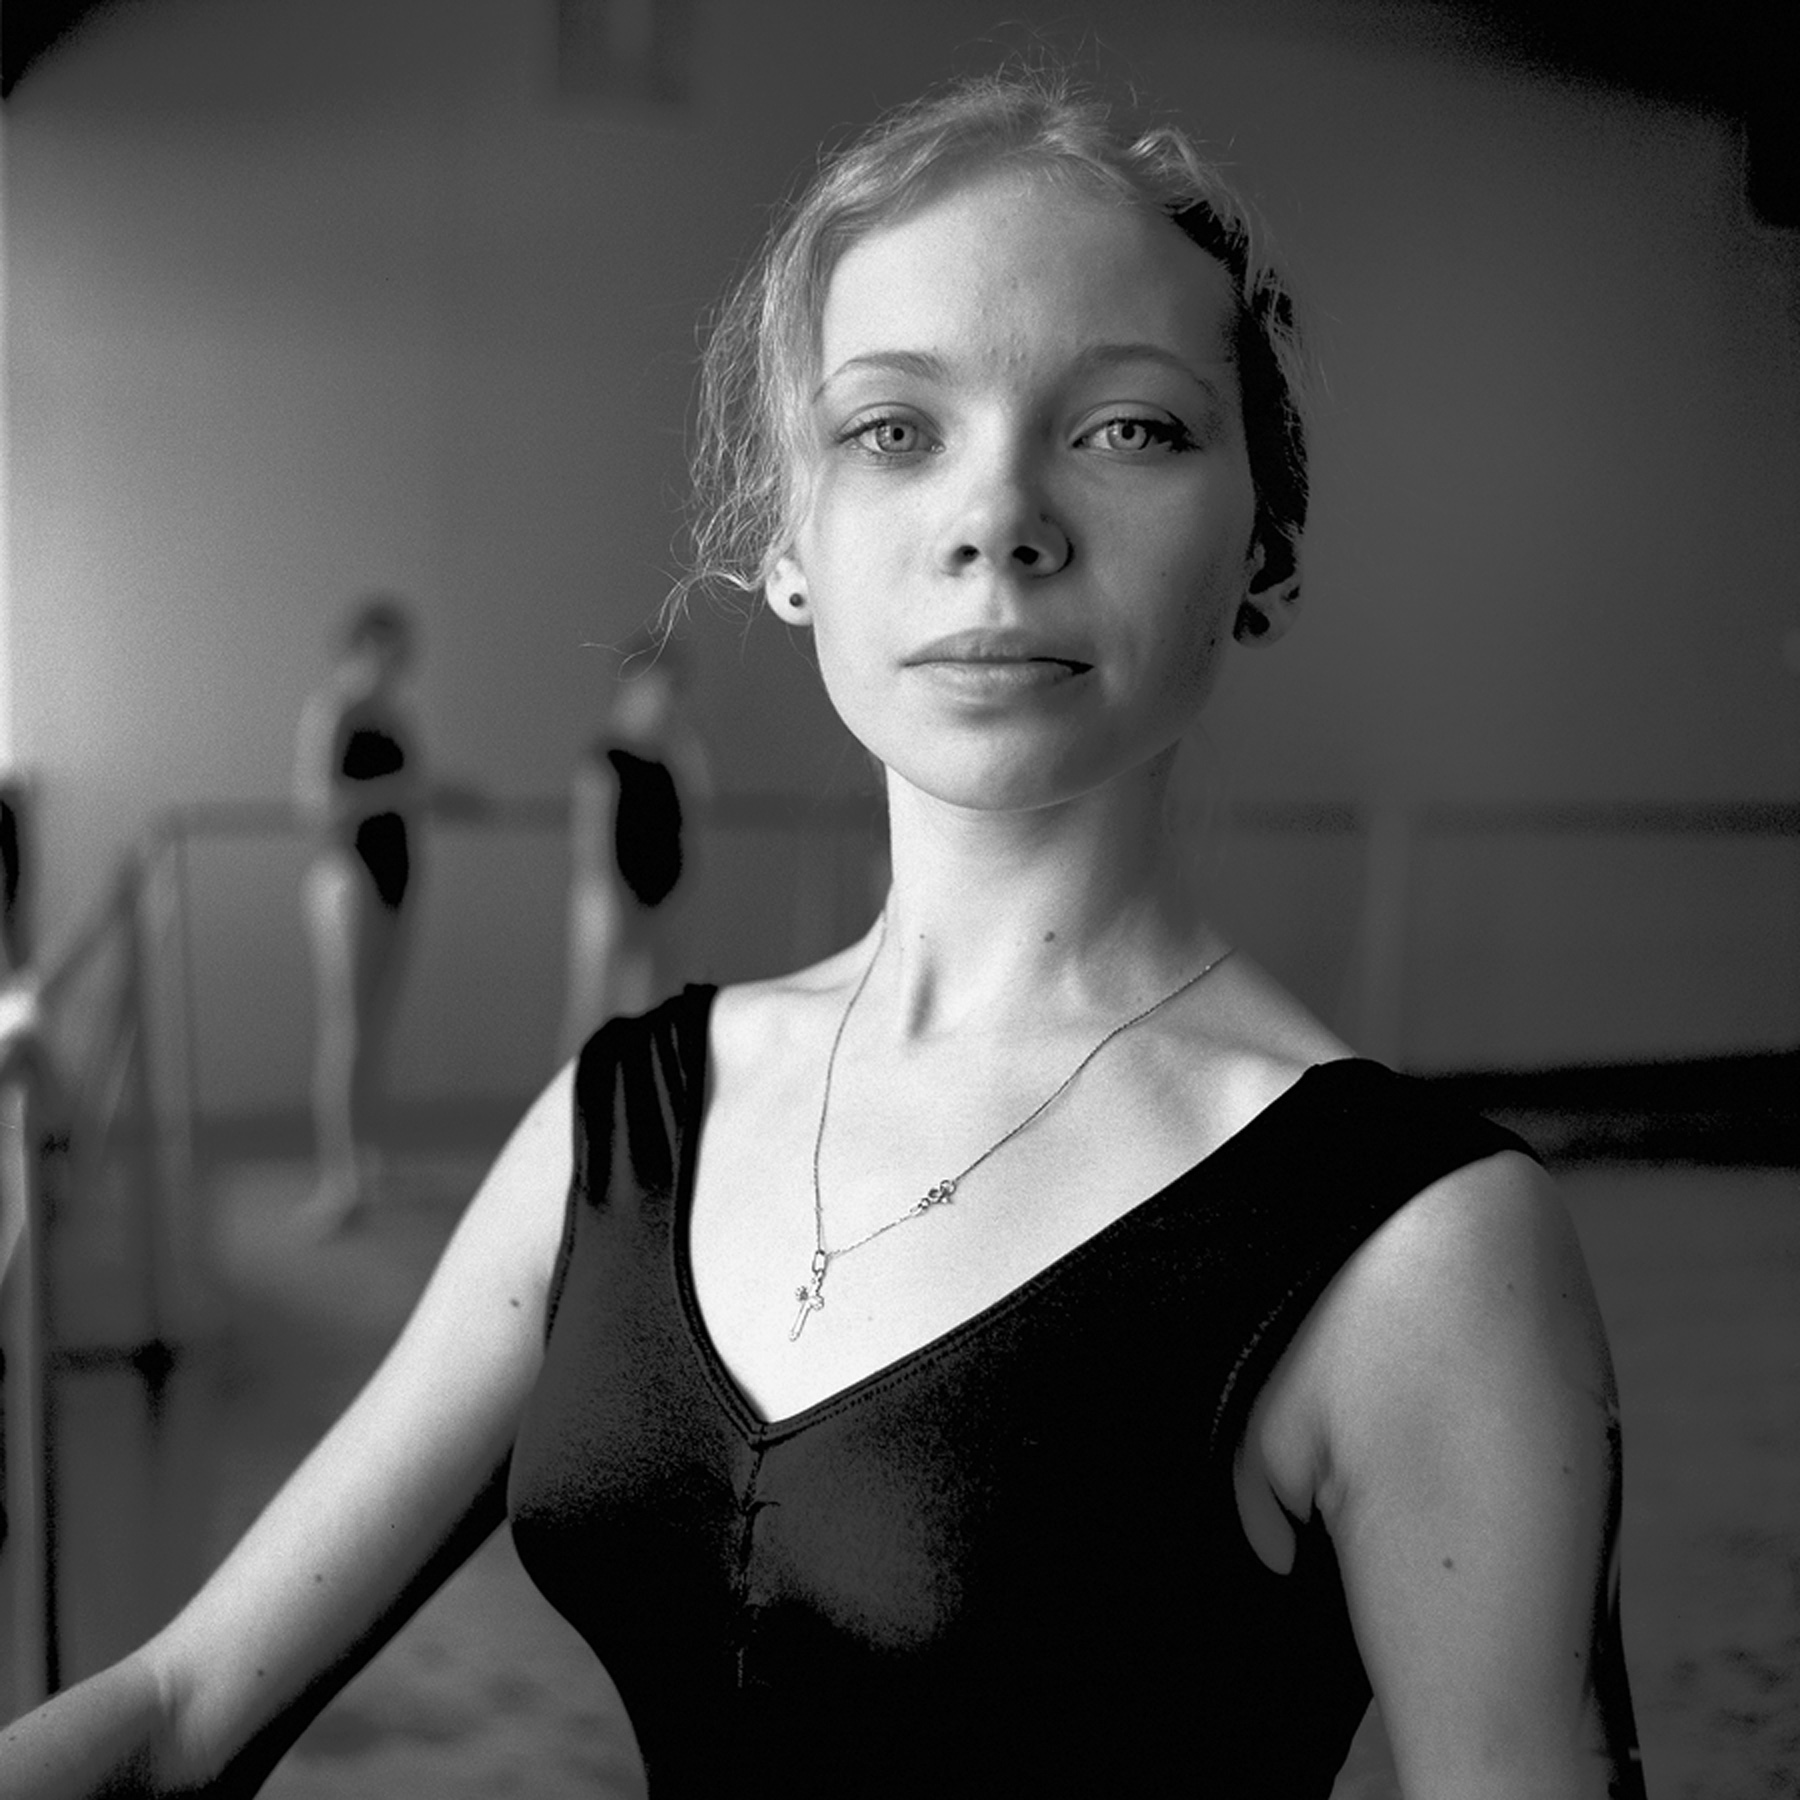 Little yuong russian nude Young Ballerina